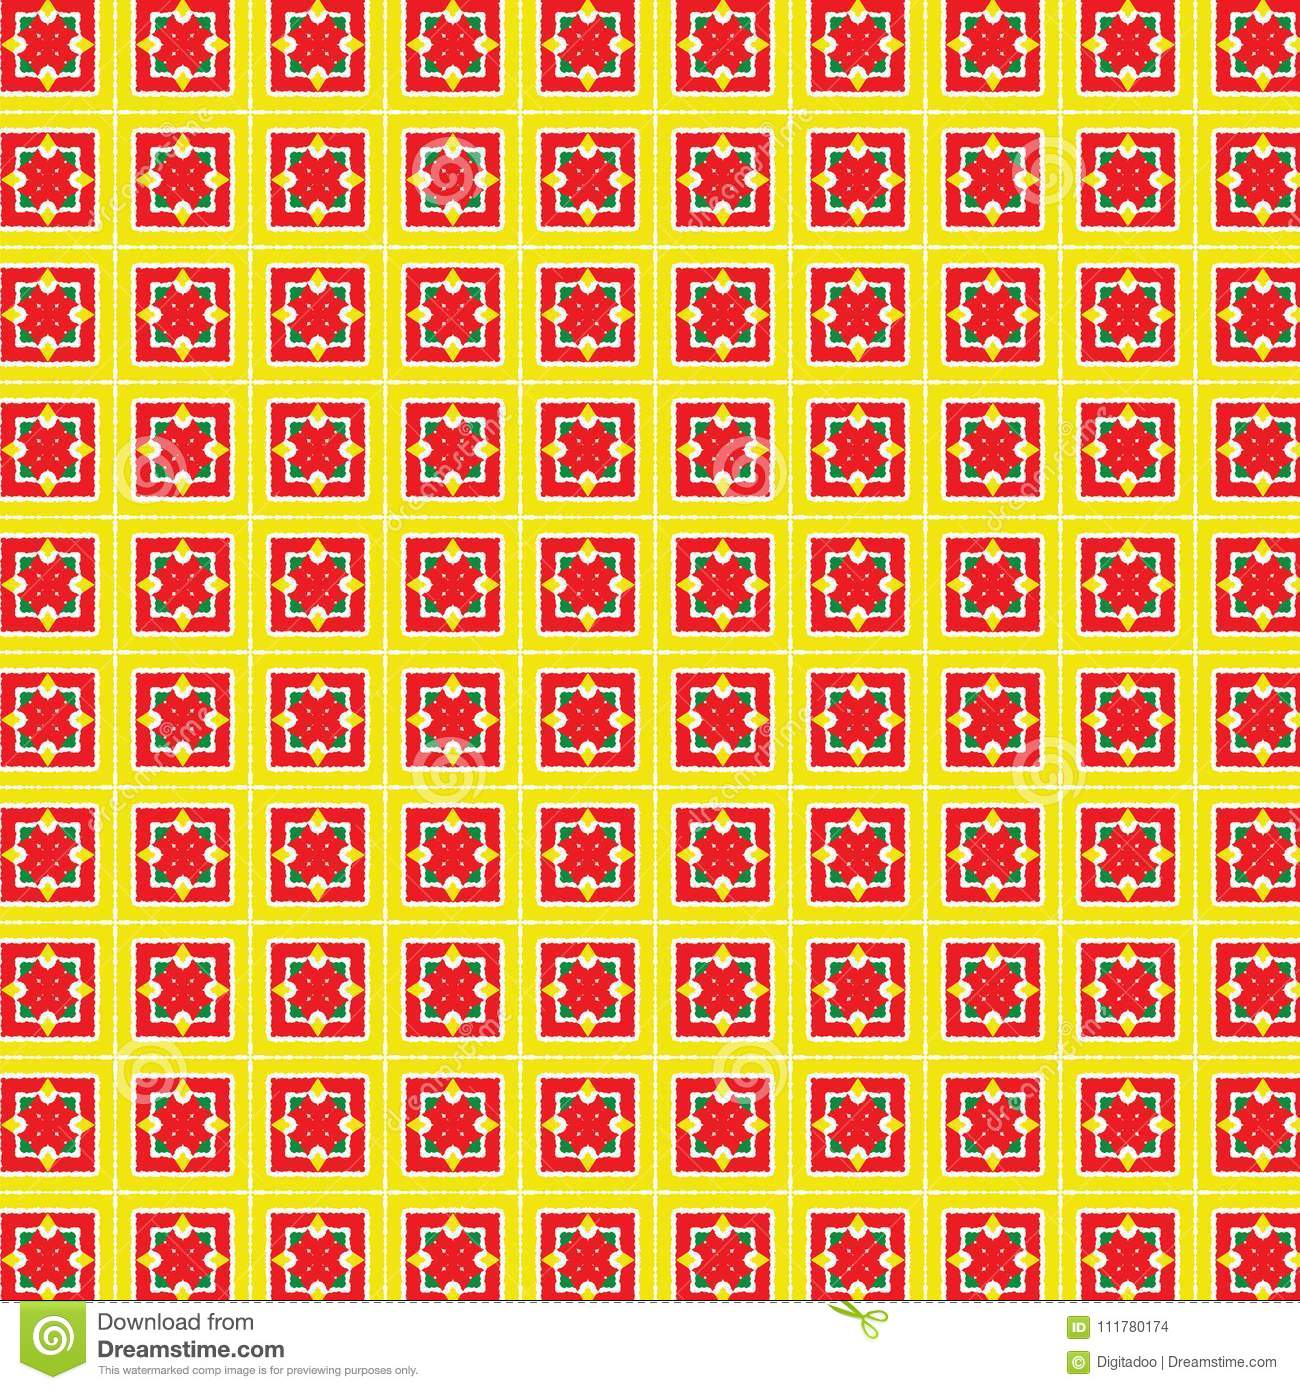 Abstract Seamless Holiday Christmas Plaid Lines Pattern Background Vector Illustration